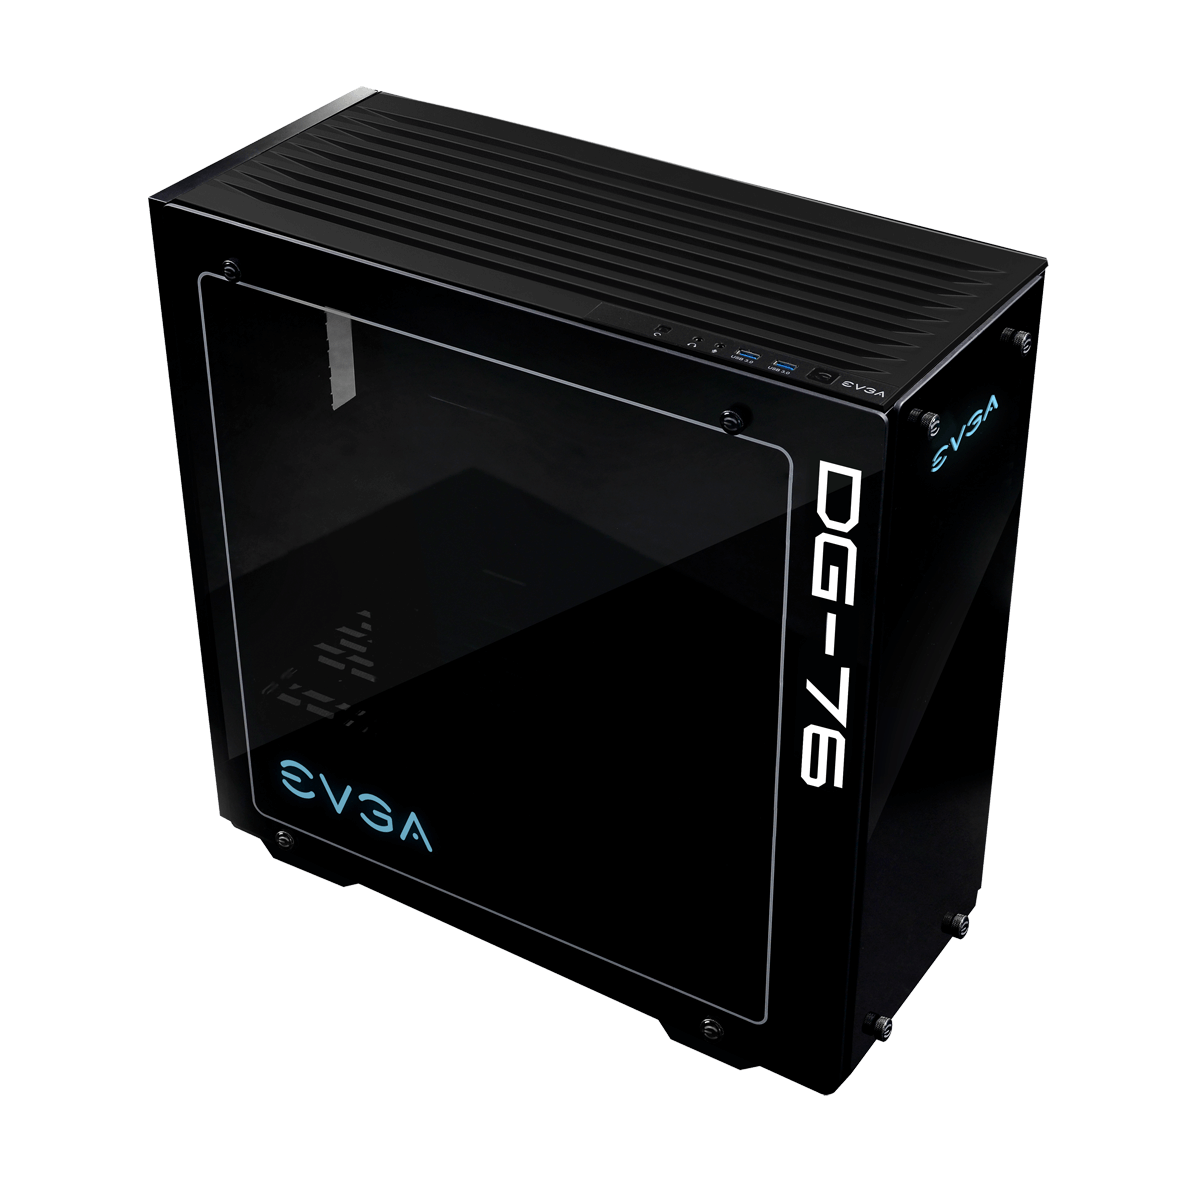 EVGA DG-76 Midi Tower Chasis with Tempered Glass - Matte Black - 160-B0-2230-KR